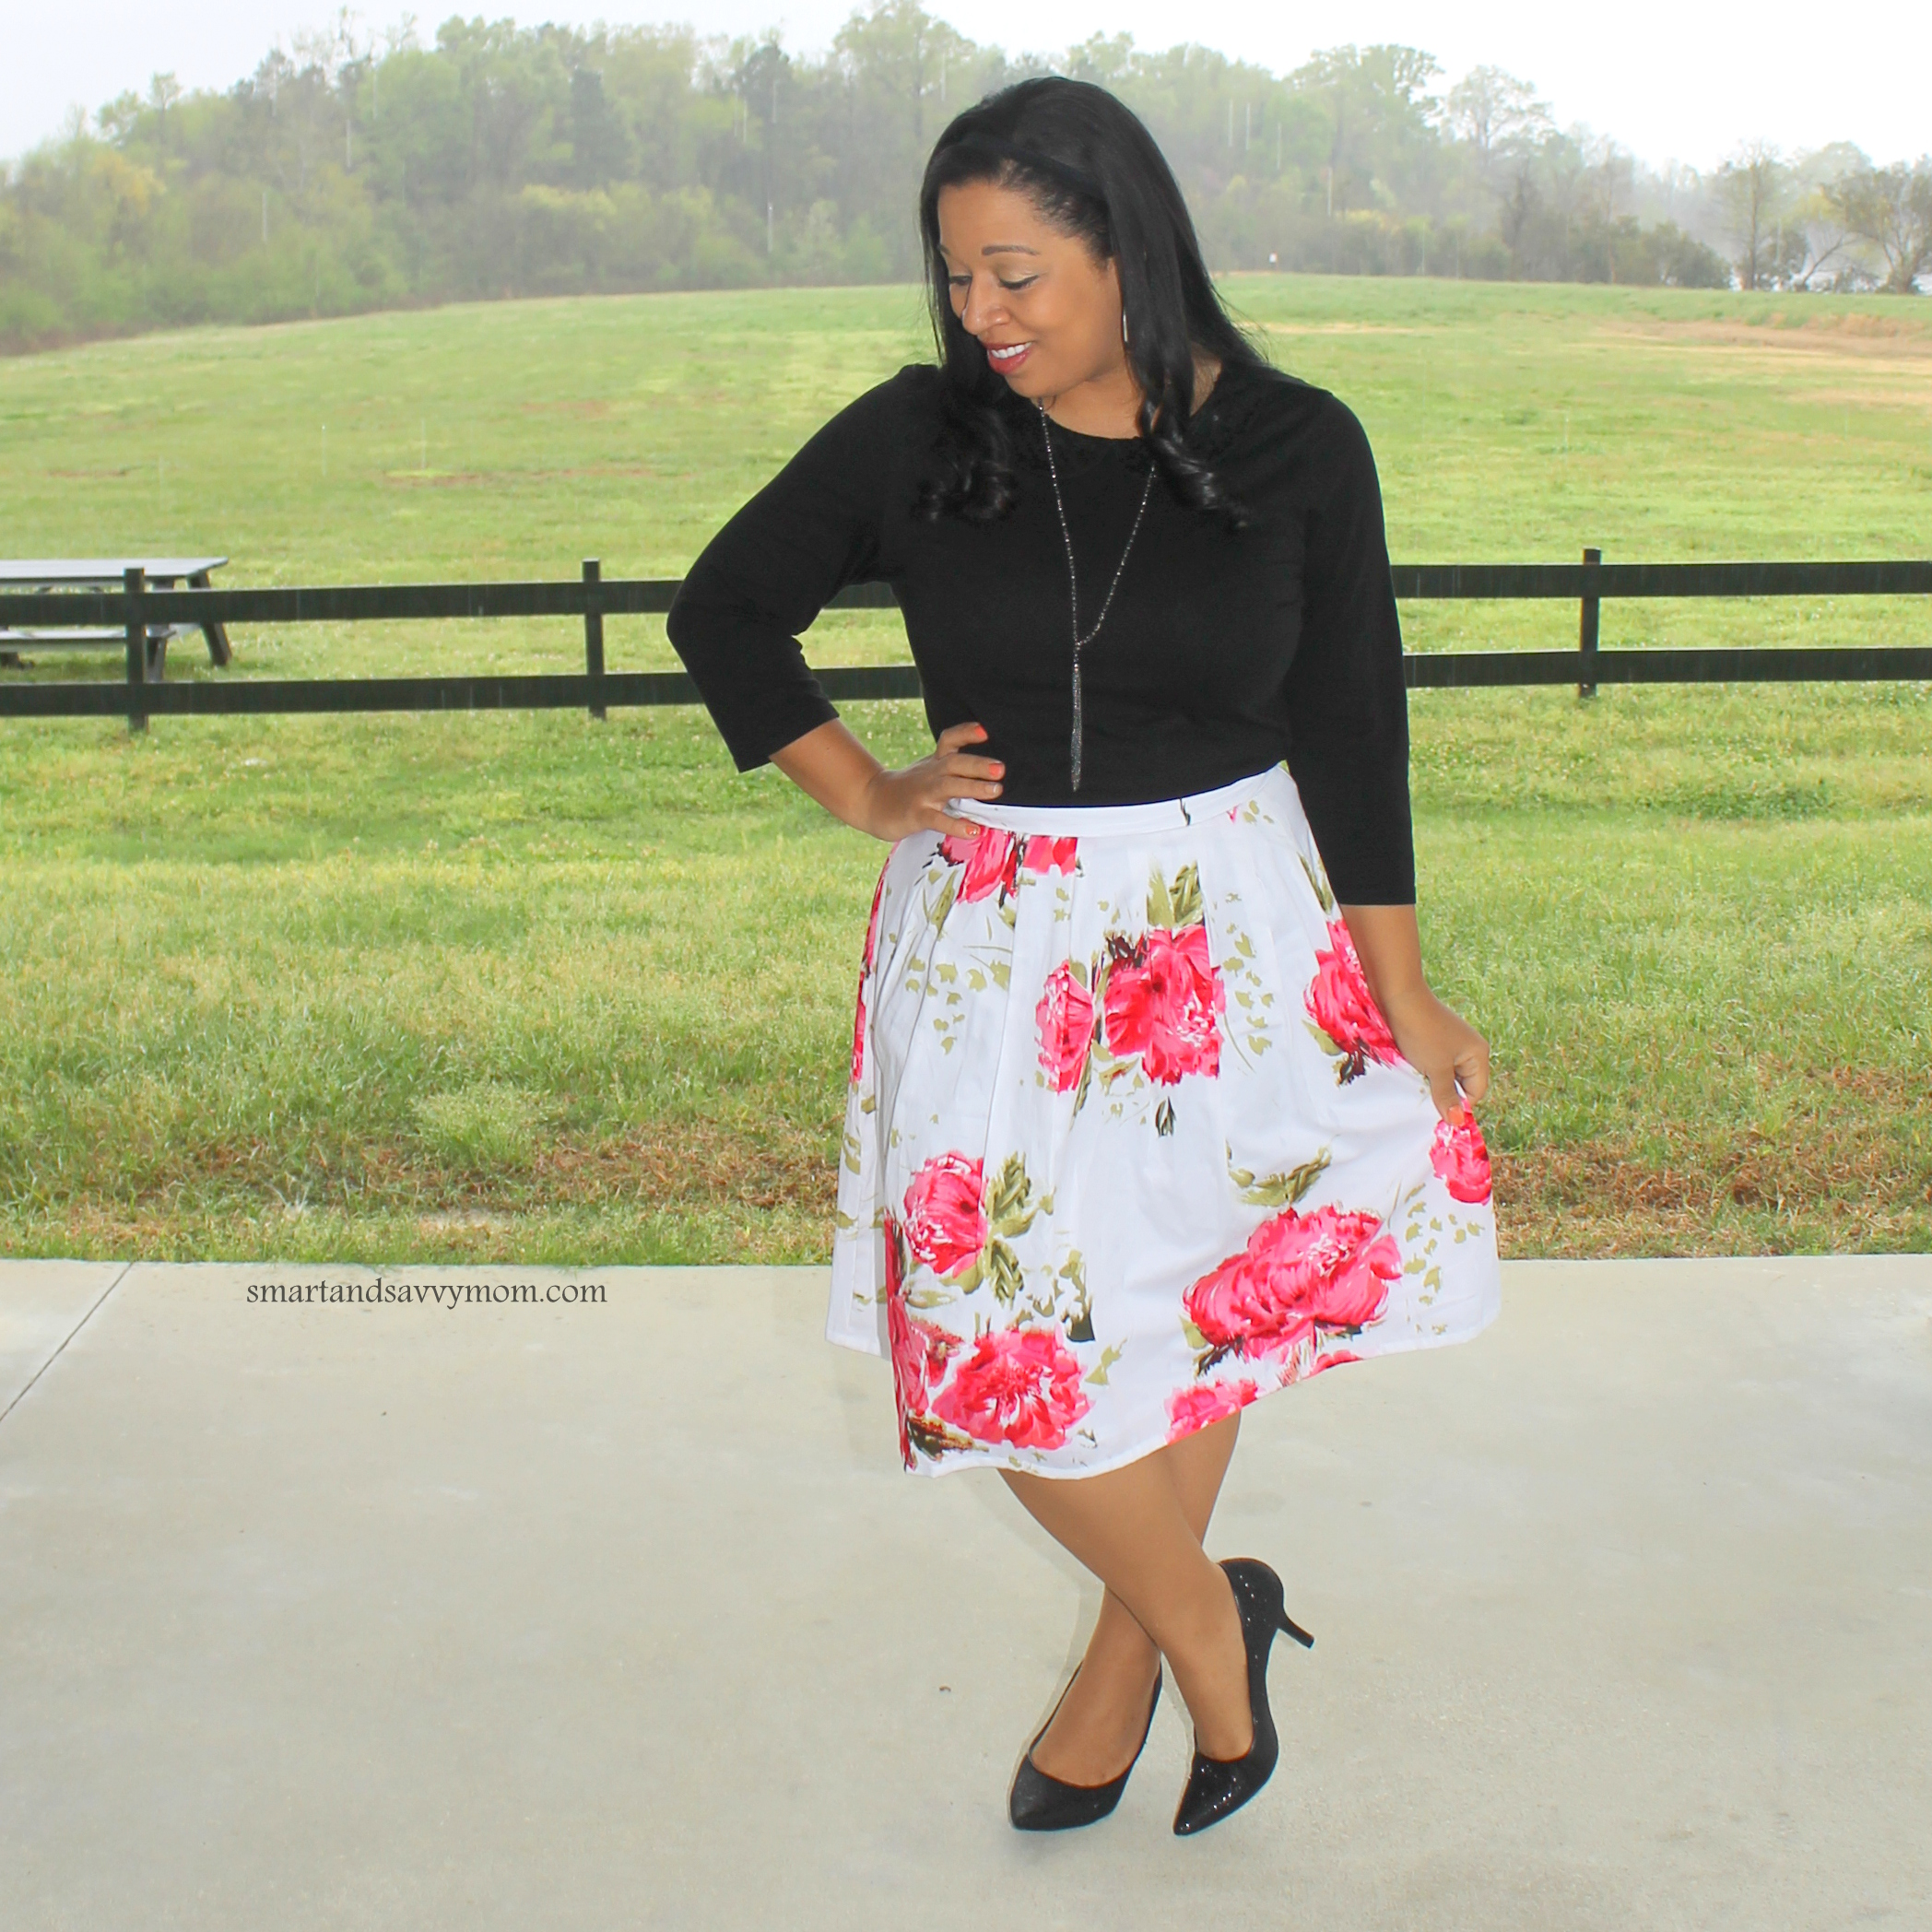 black top with pink and white floral skirt modest outfit idea